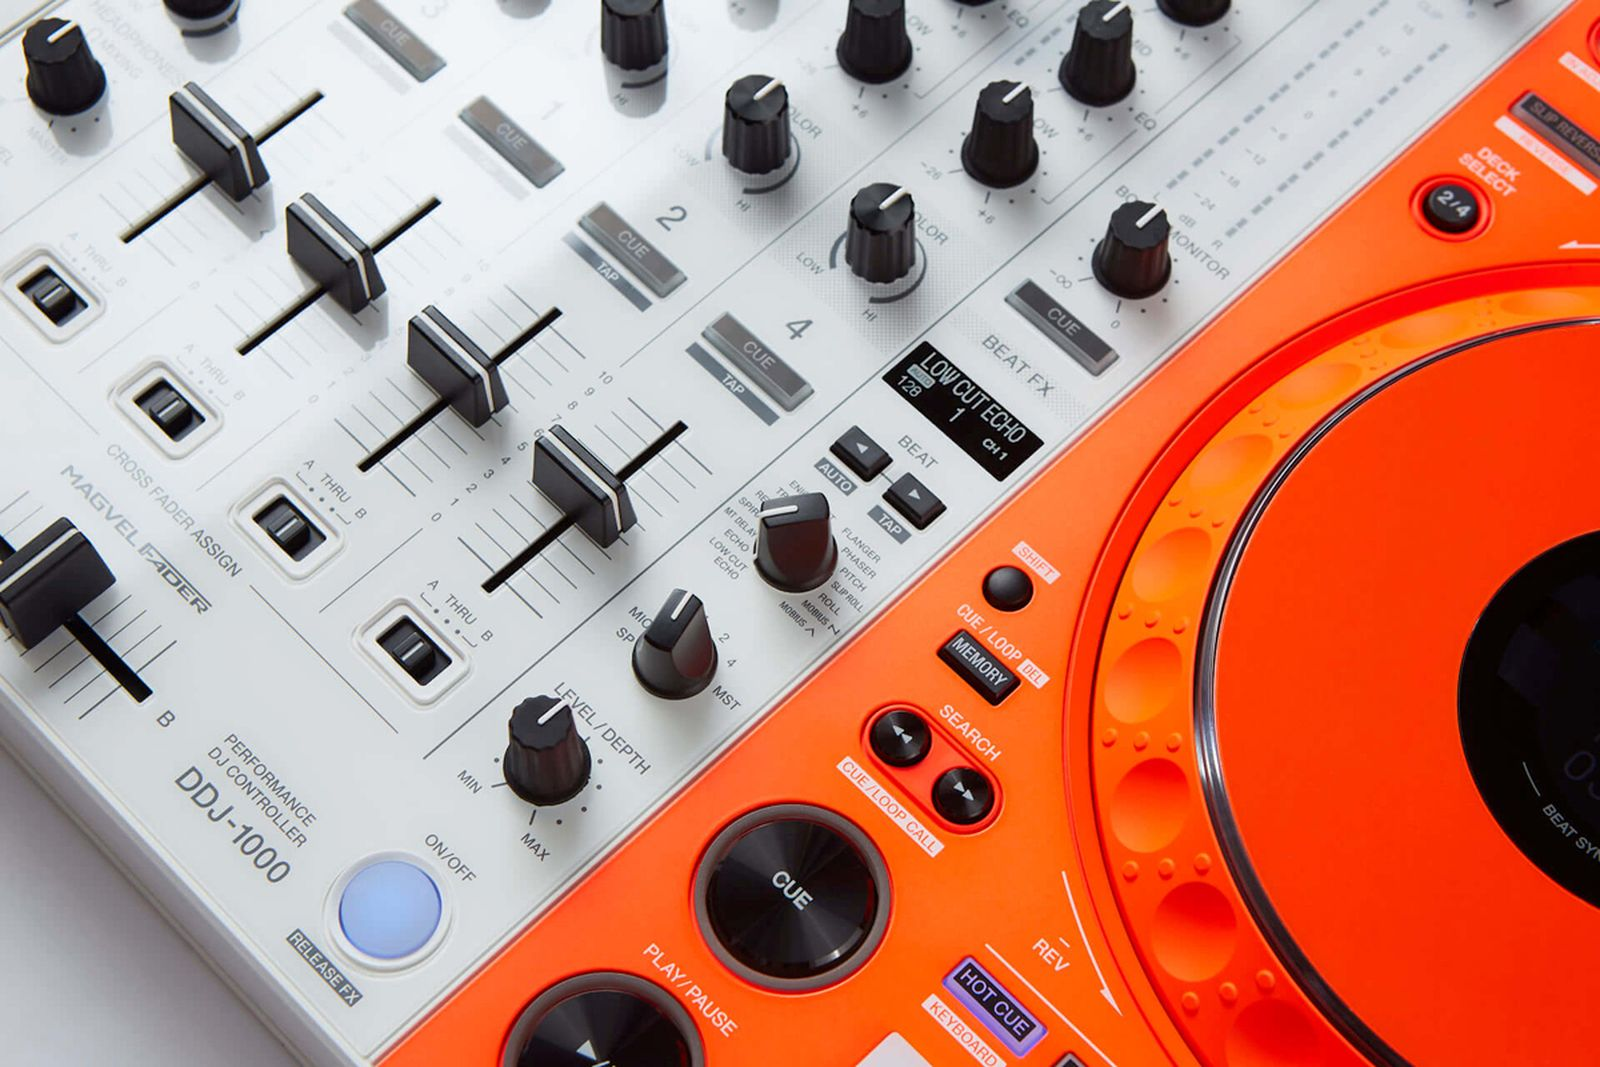 off-white-pioneer-dj-controller-apparel-collab- (4)